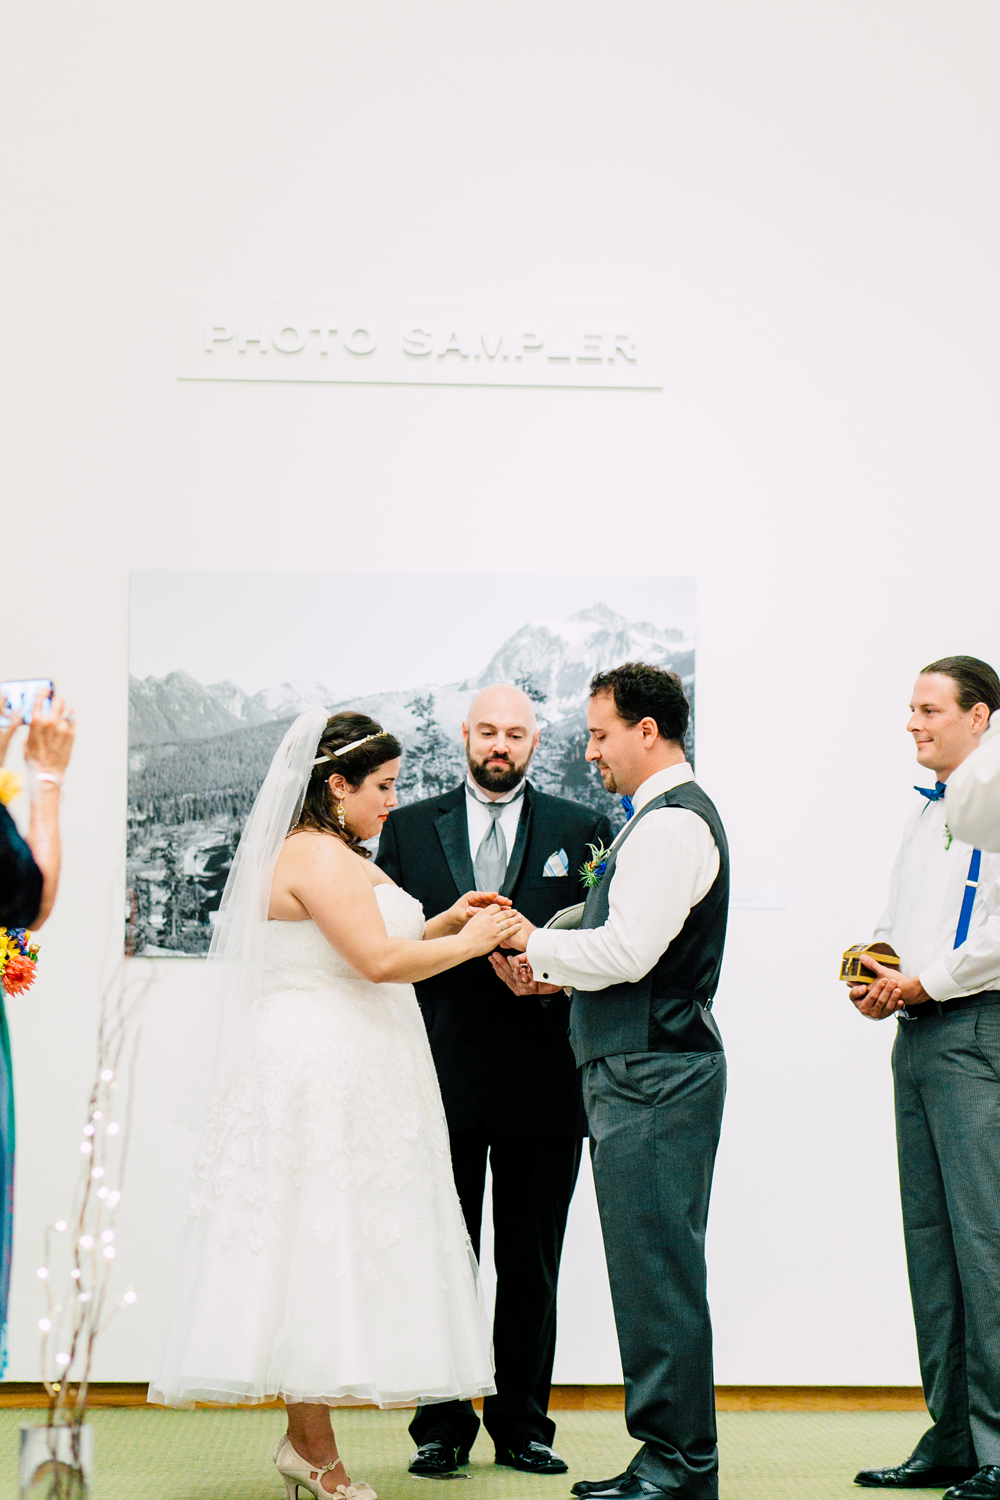 076-bellingham-wedding-photographer-whatcom-museum-katheryn-moran-photography-longwell.jpg